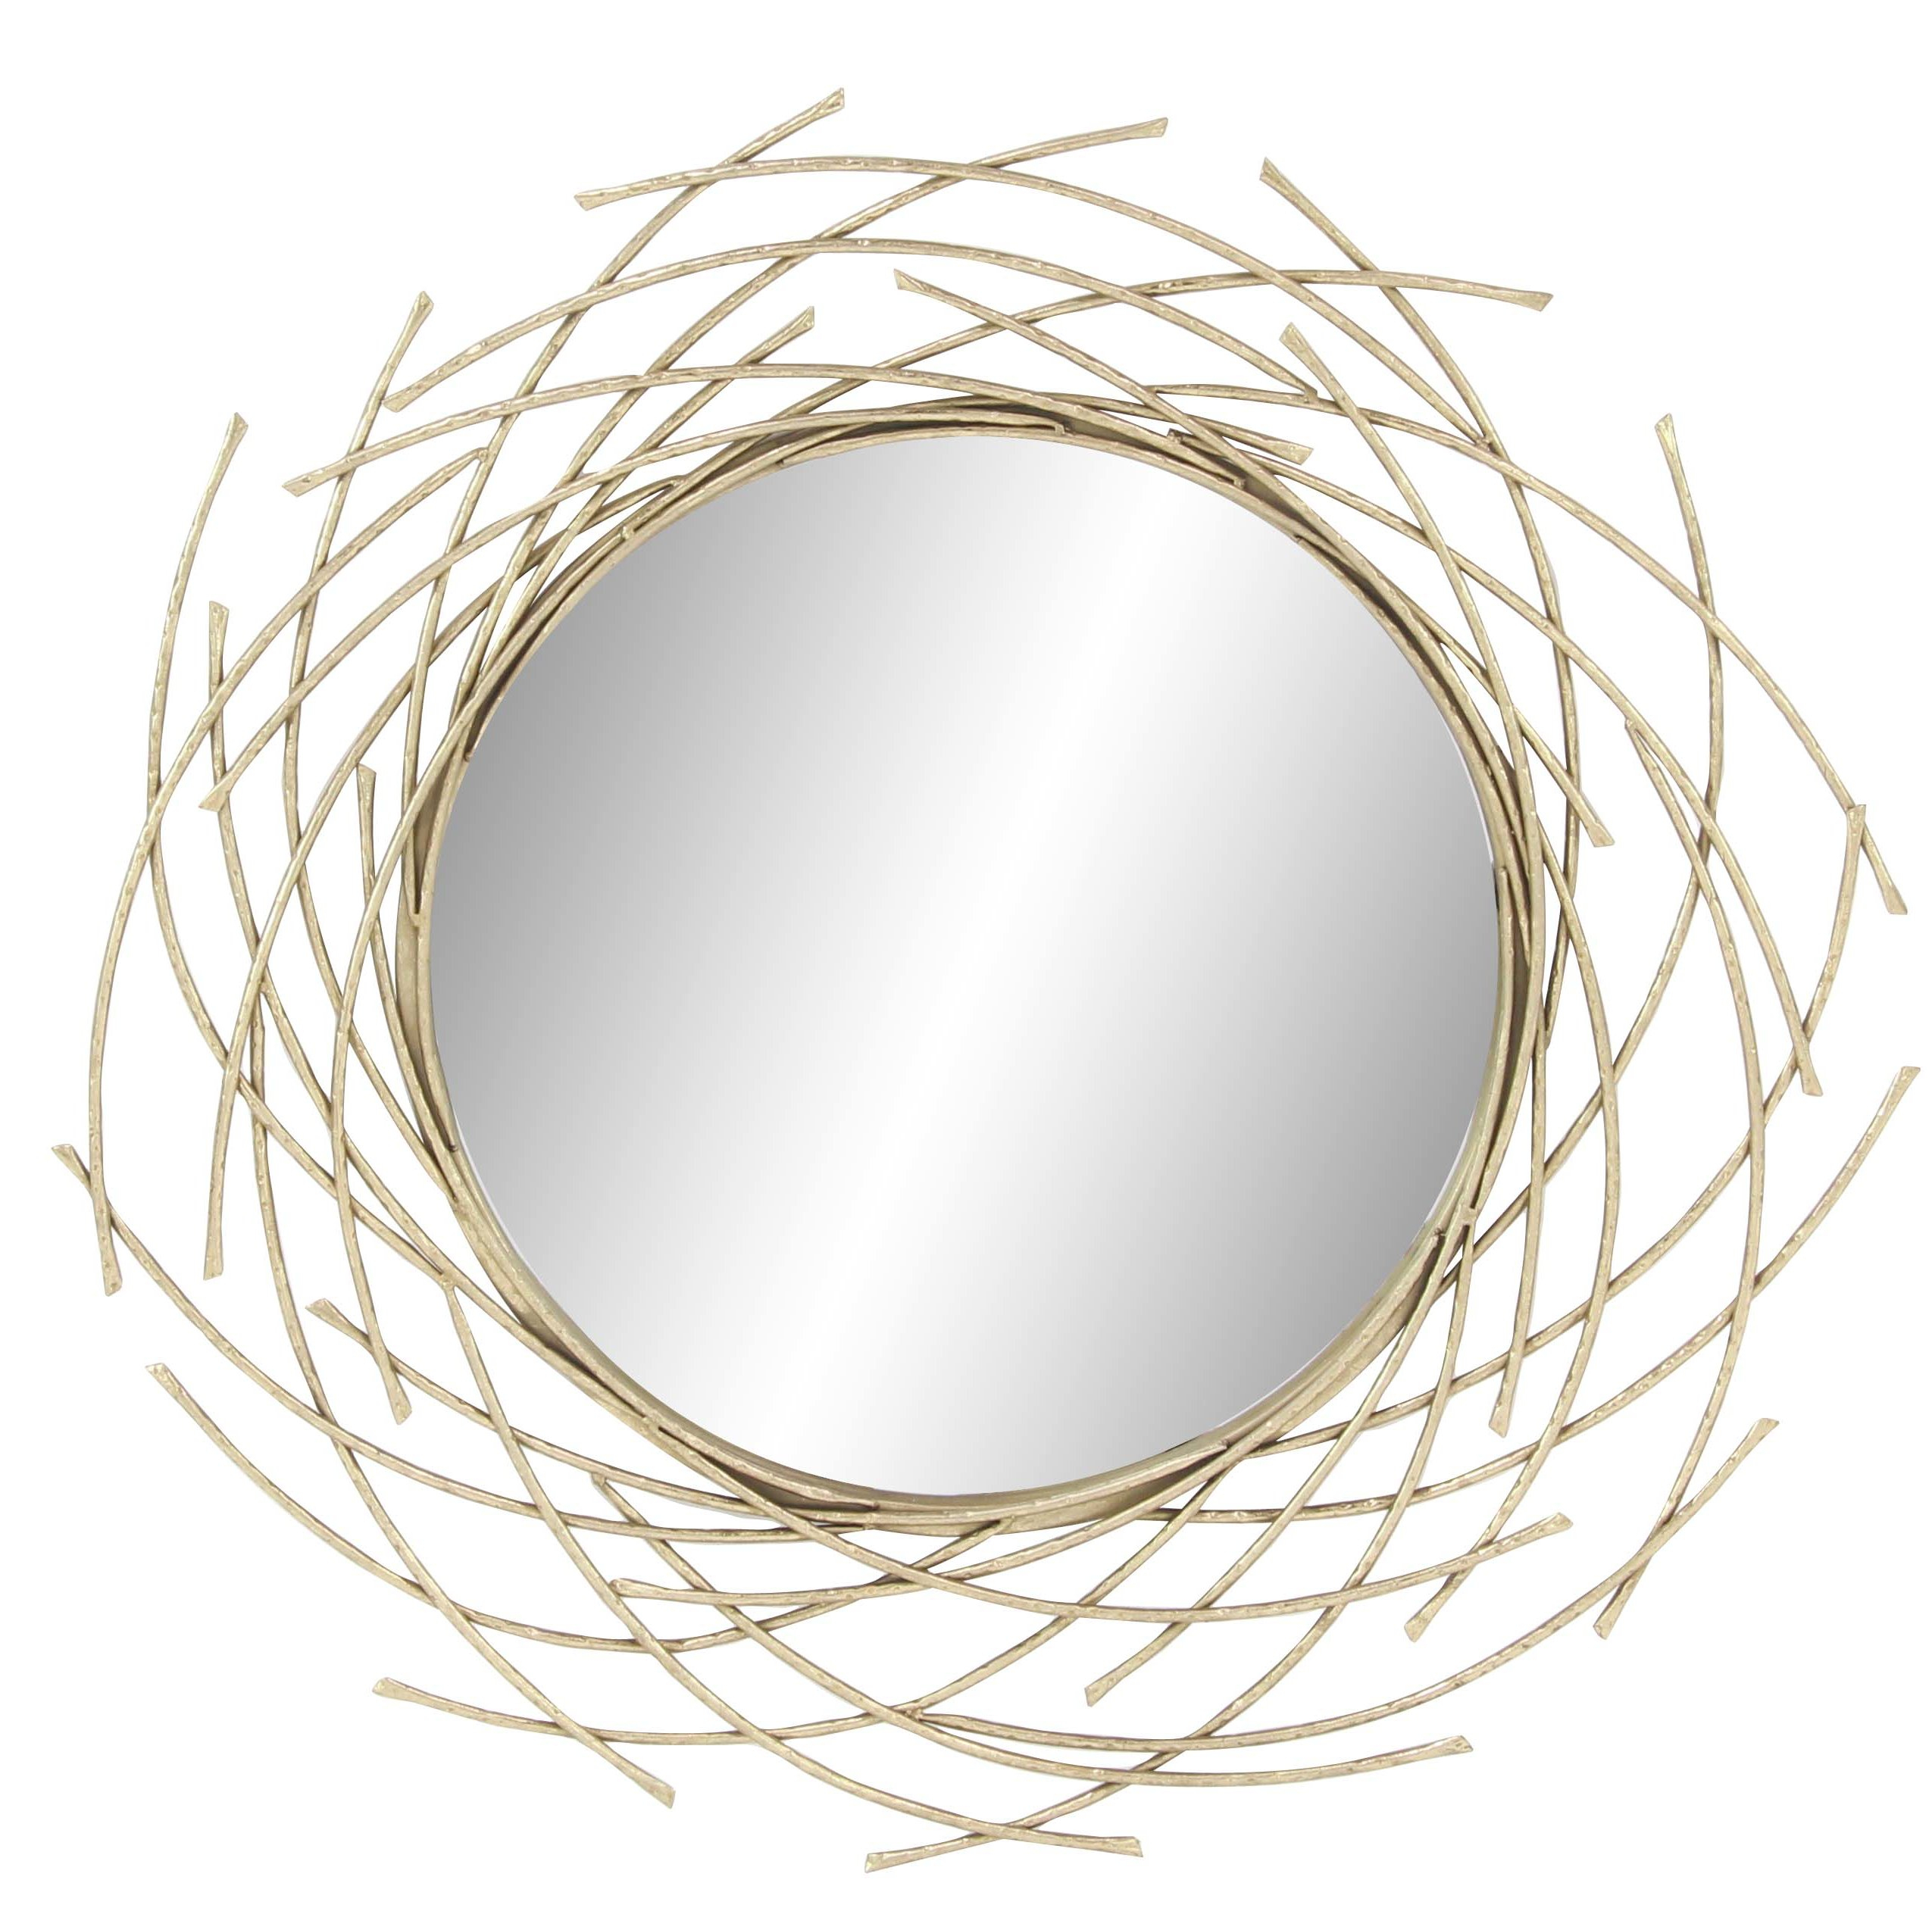 Modern Overlapping Arc Accent Mirror Pertaining To Newtown Accent Mirrors (View 22 of 30)